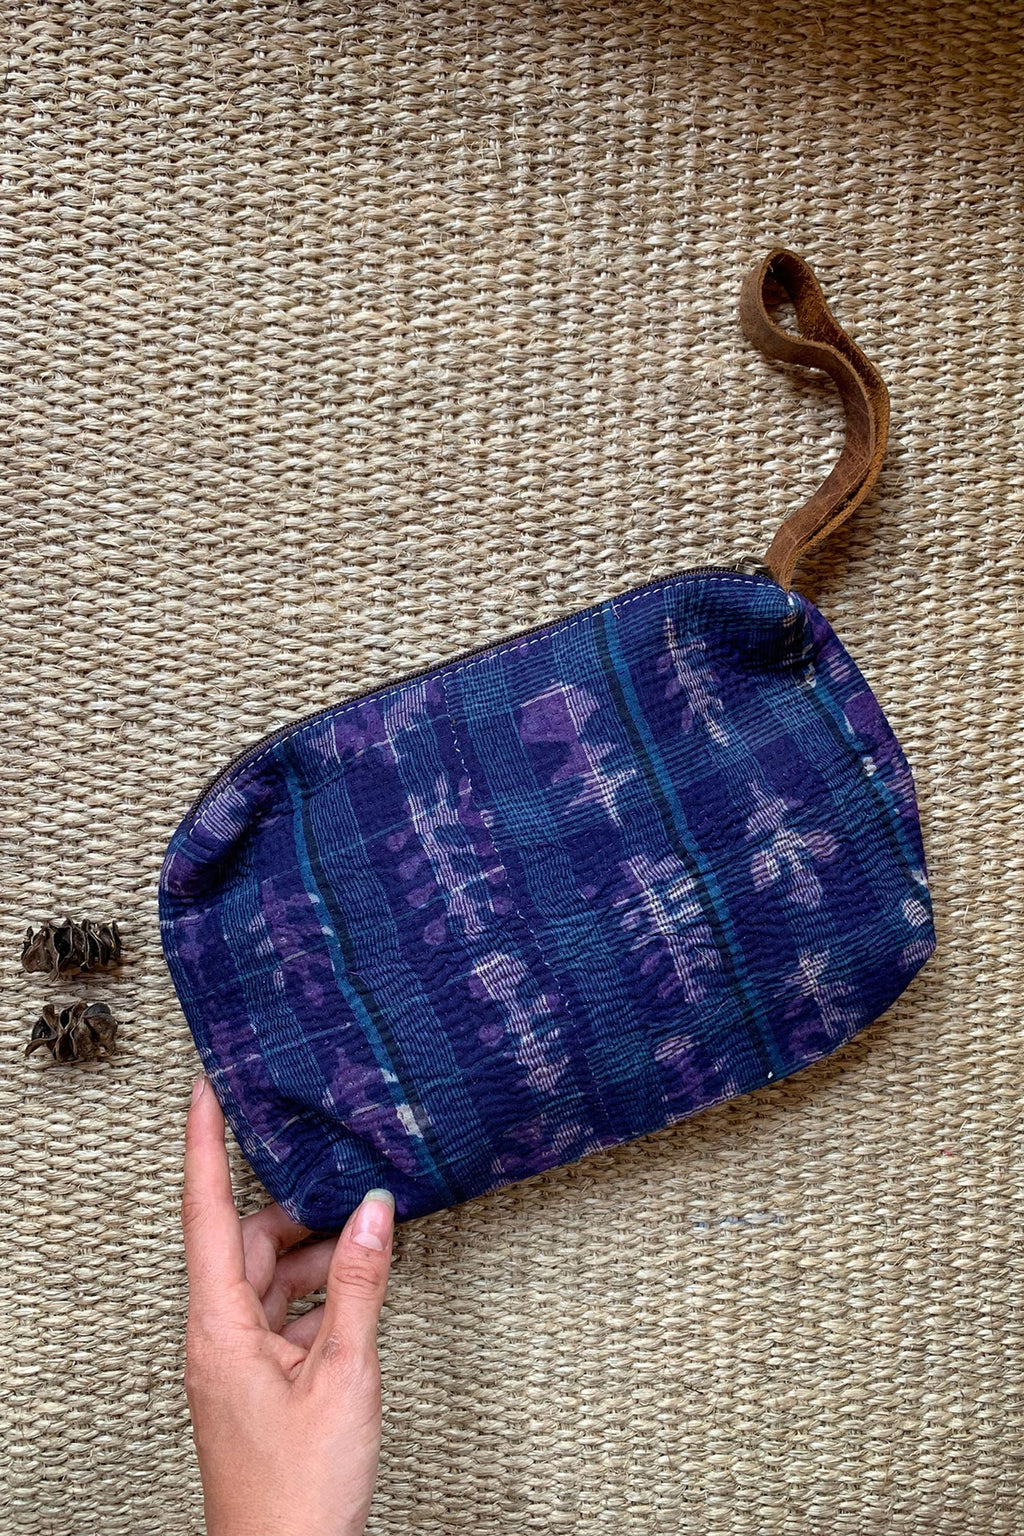 Purple and Blue Small Clutch Wallet Bag